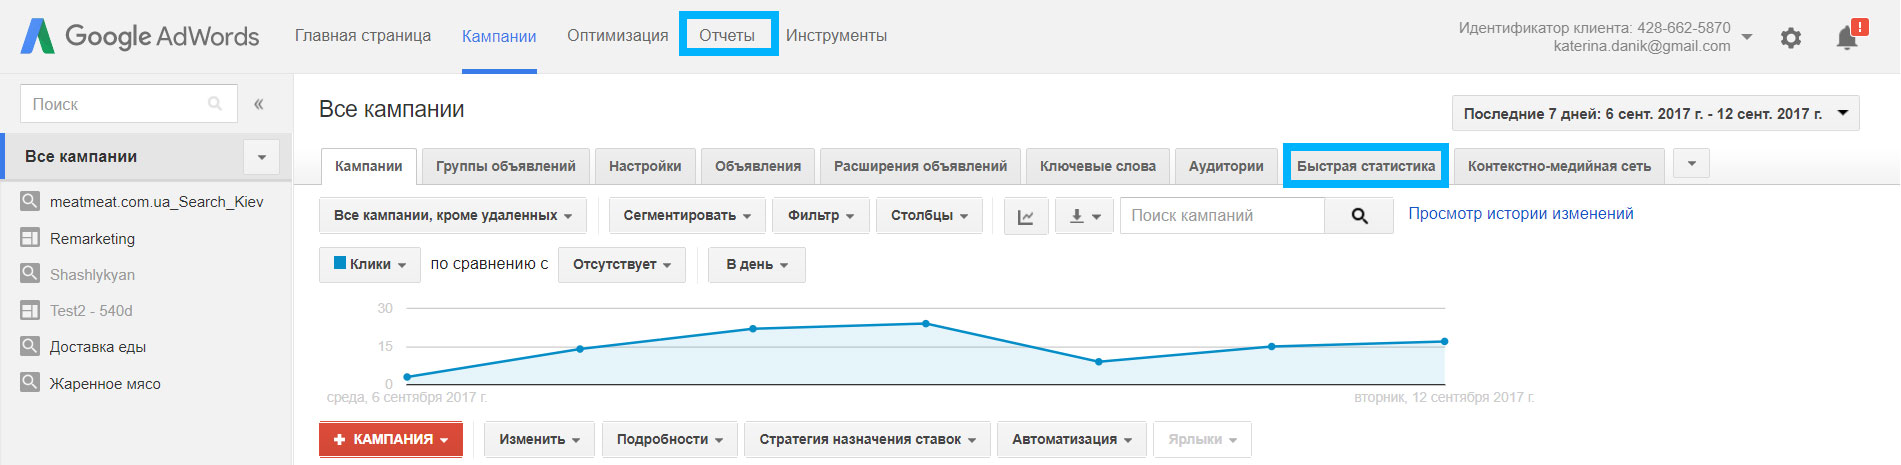 Отчеты в Google AdWords - было